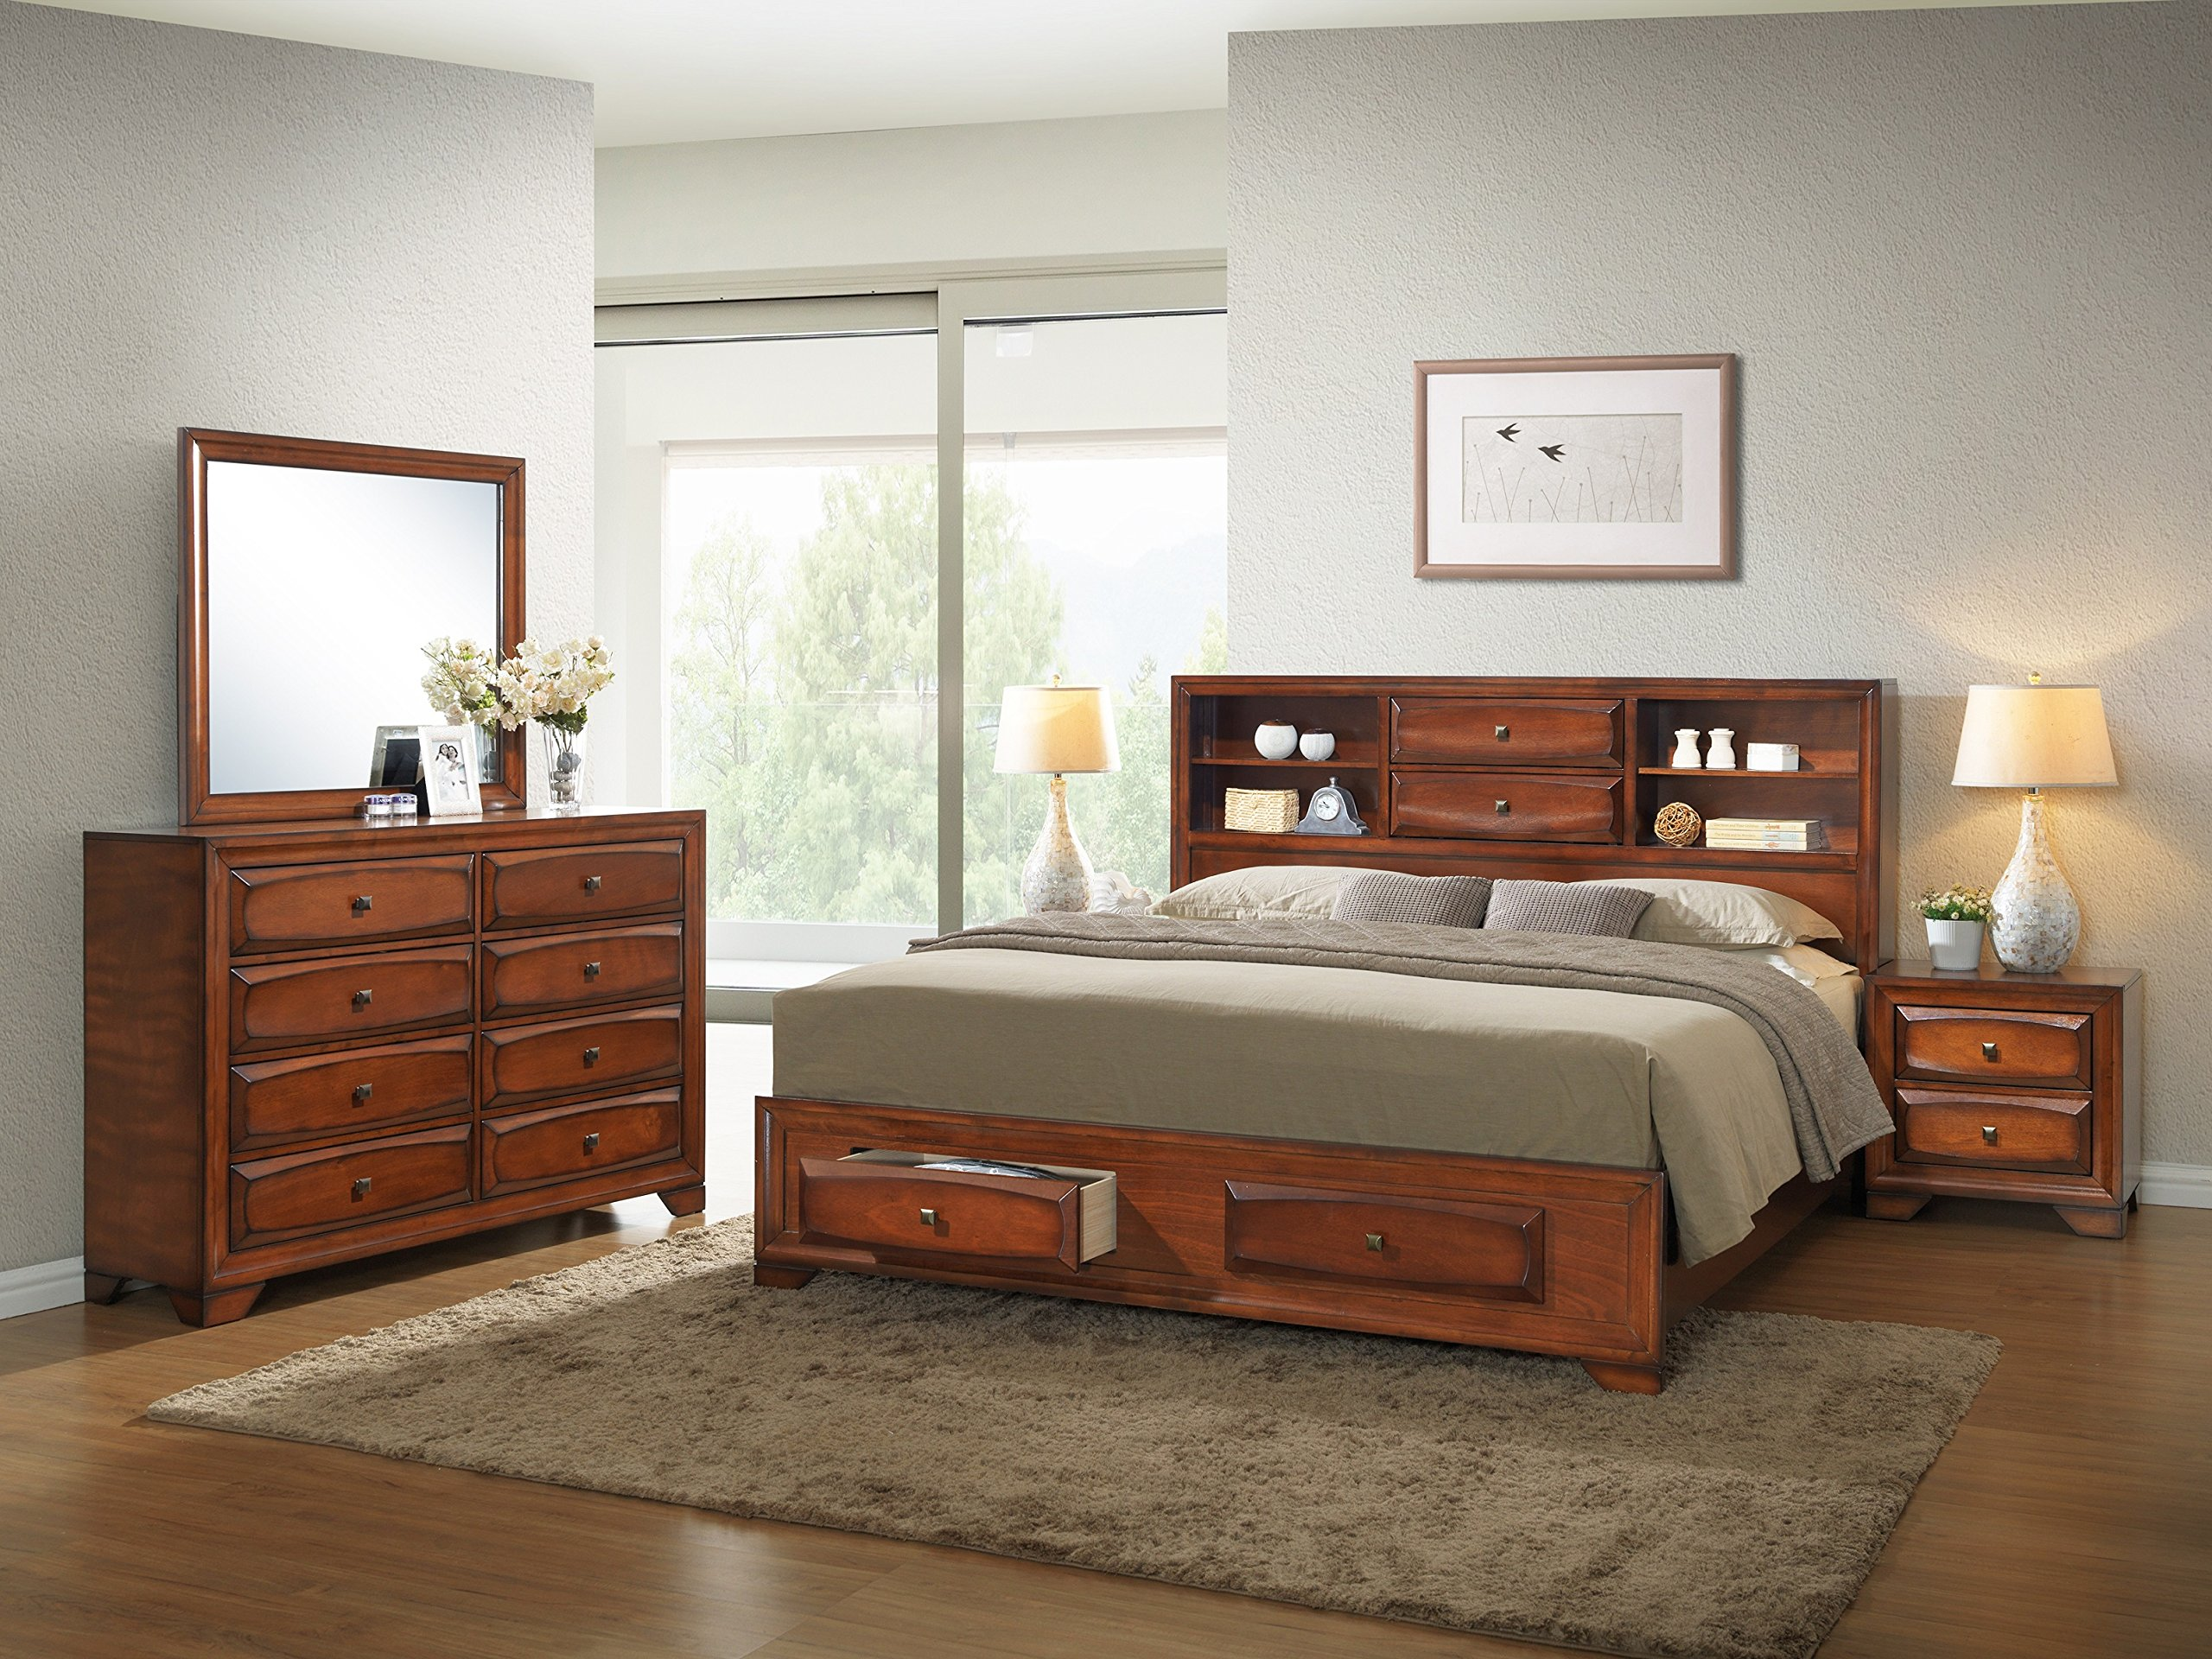 Roundhill Furniture Asger Antique Oak Finish Wood Bed Room Set, King Storage Bed, Dresser, Mirror, 2 Night Stands by Roundhill Furniture